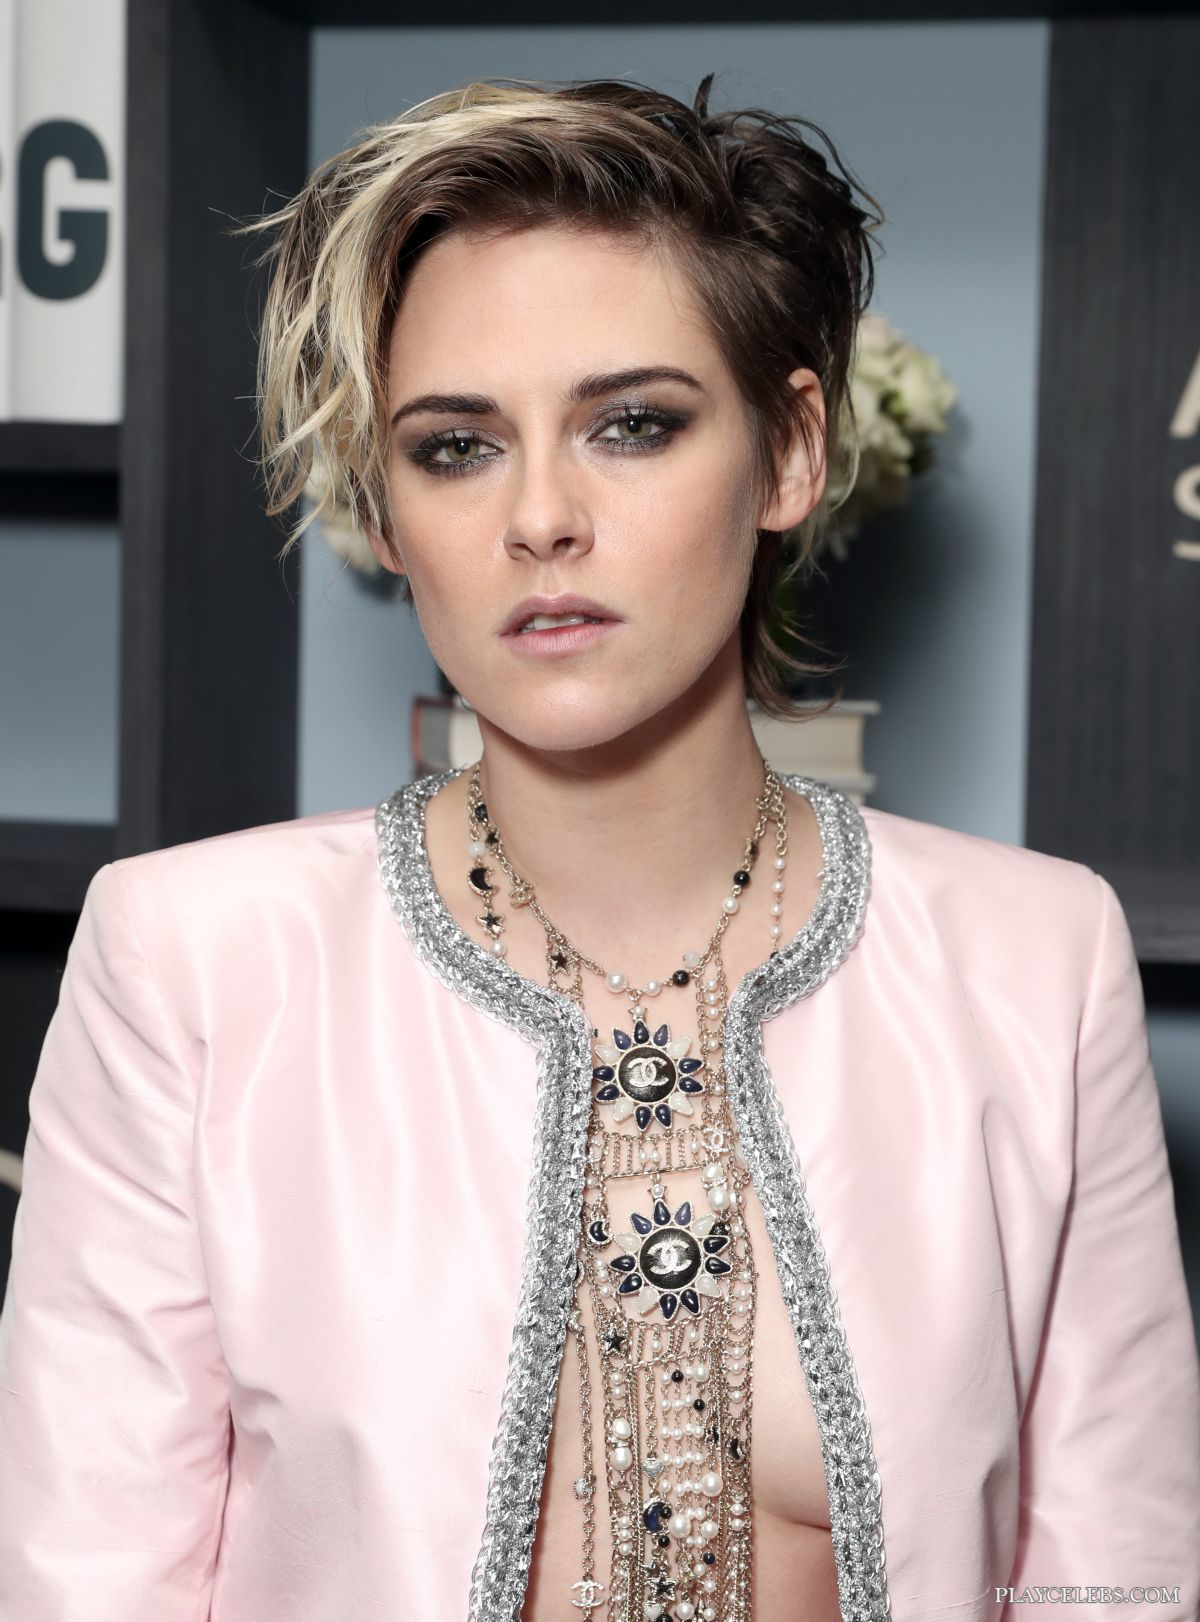 You are currently viewing Kristen Stewart Paparazzi Sexy Braless Photos